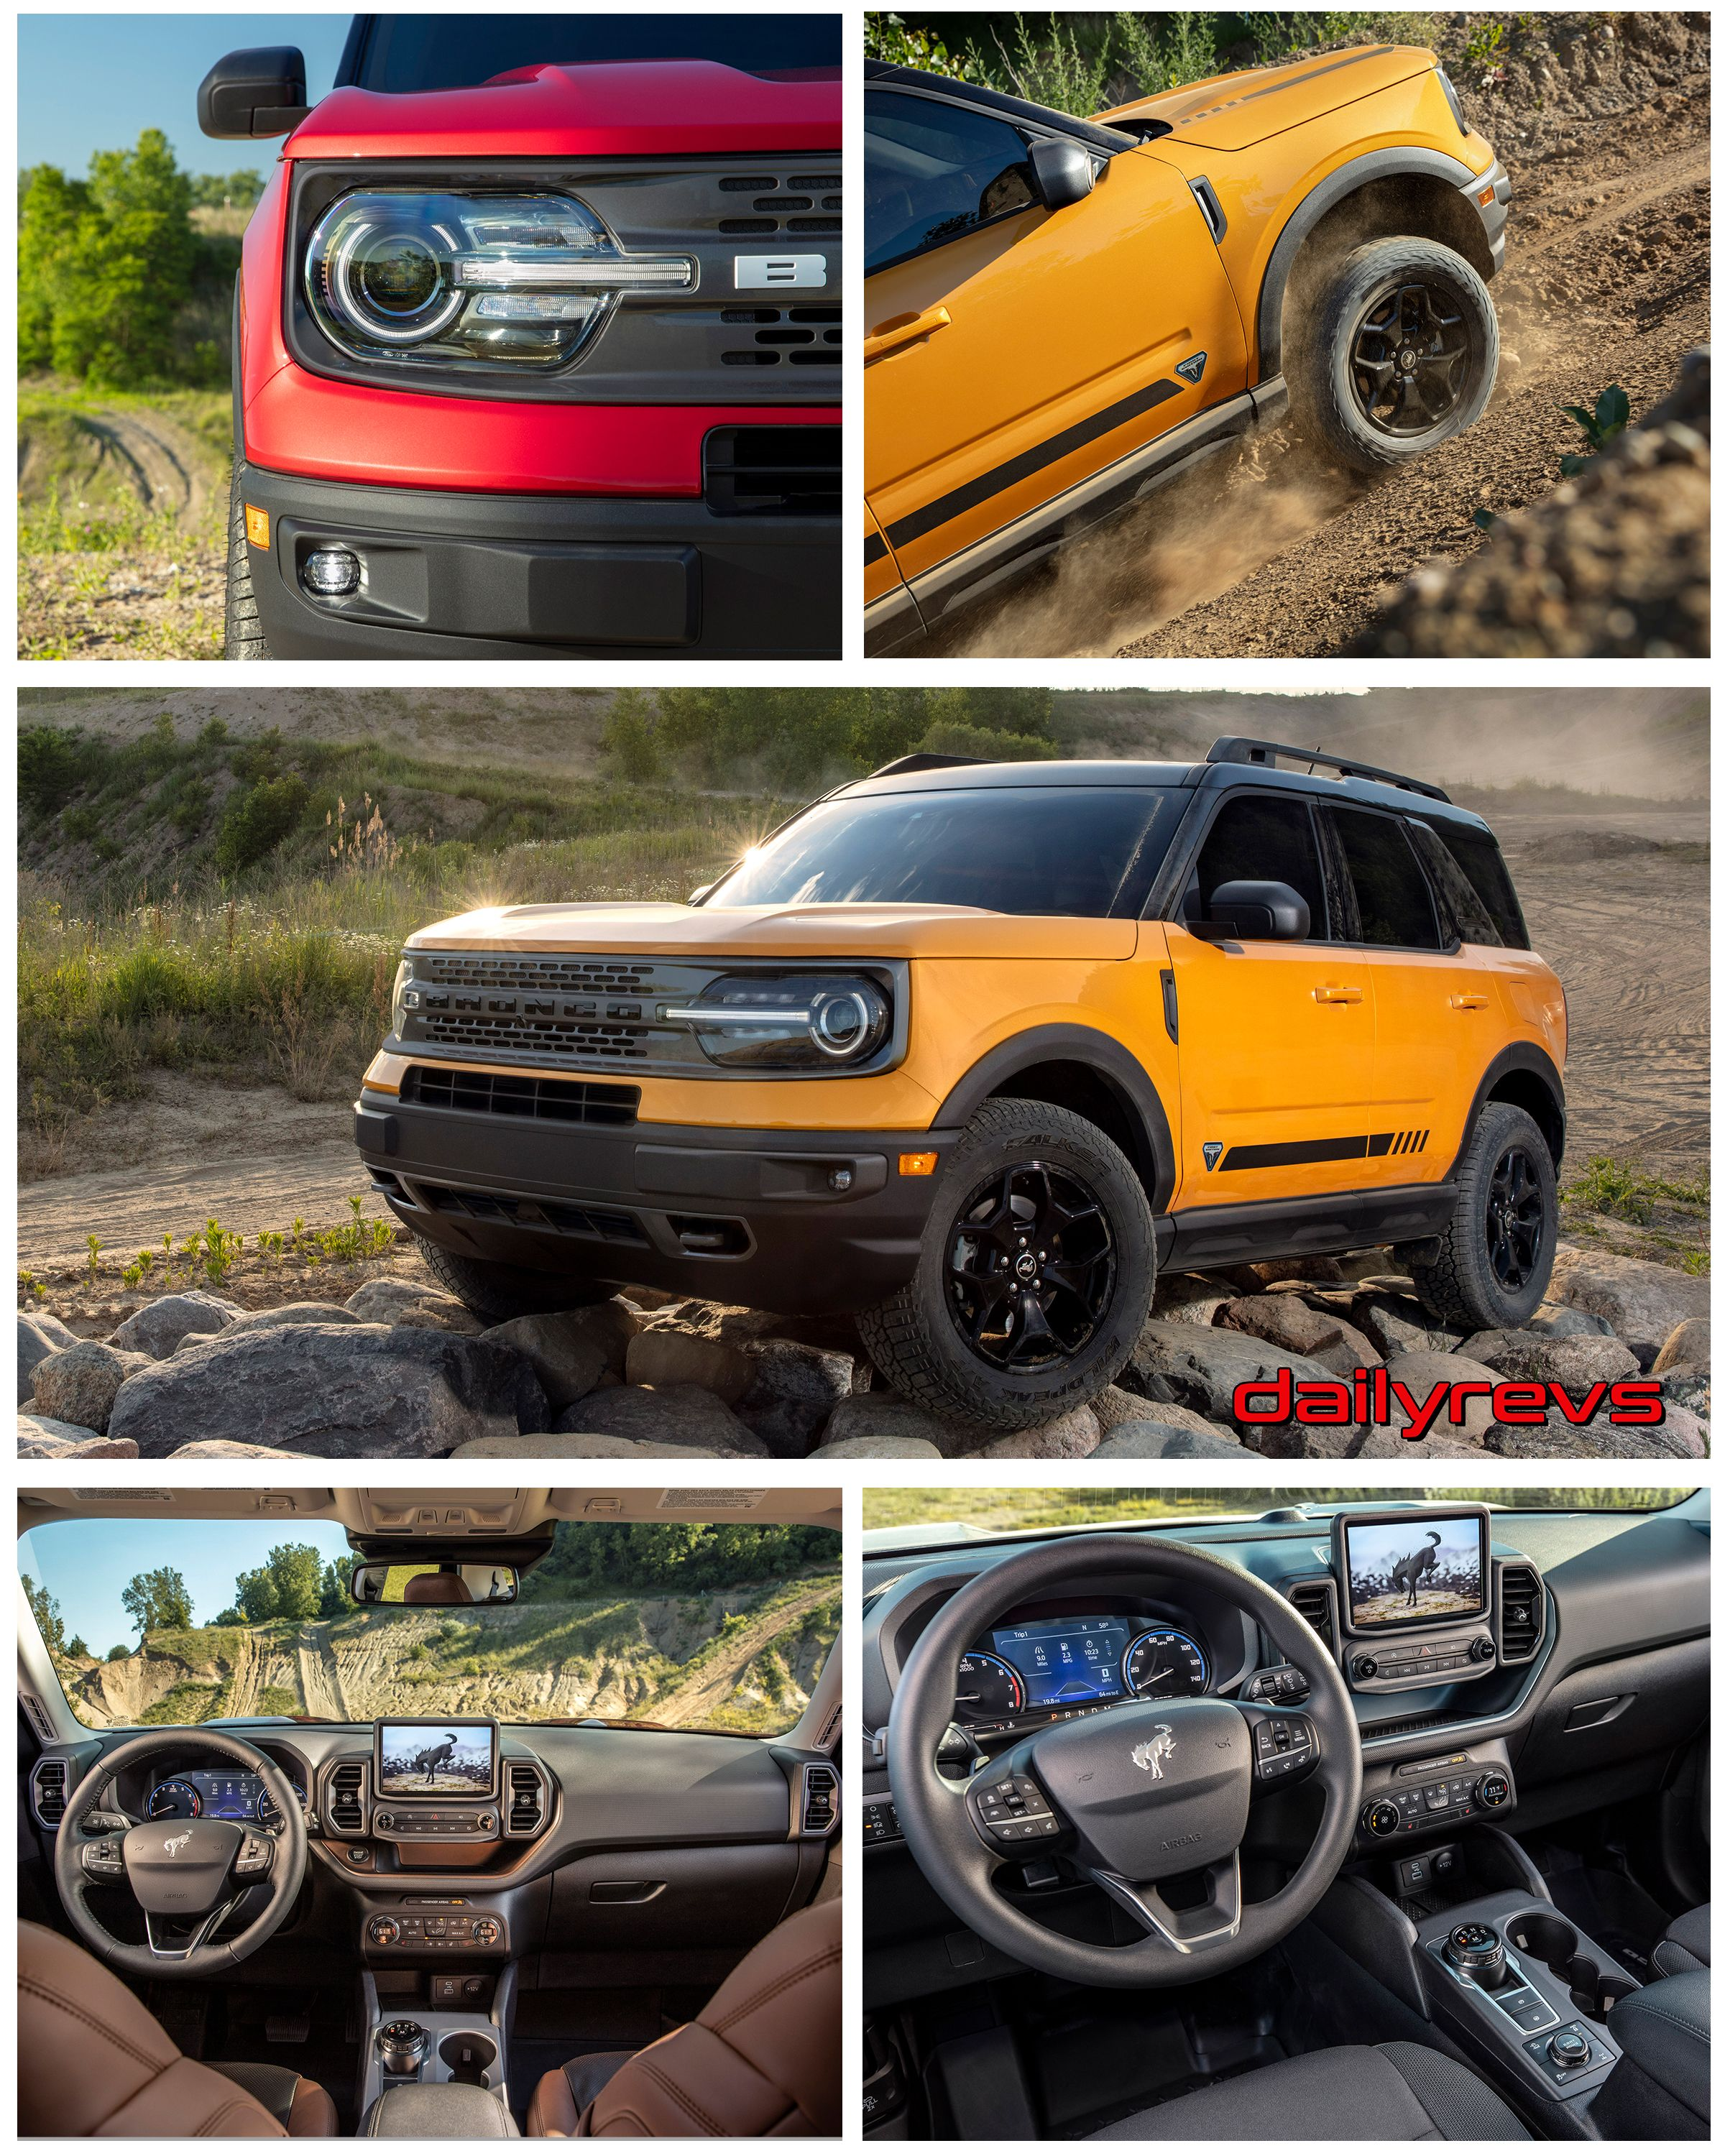 2021 Ford Bronco Sport Dailyrevs In 2020 Bronco Sports Ford Bronco Sport Suv